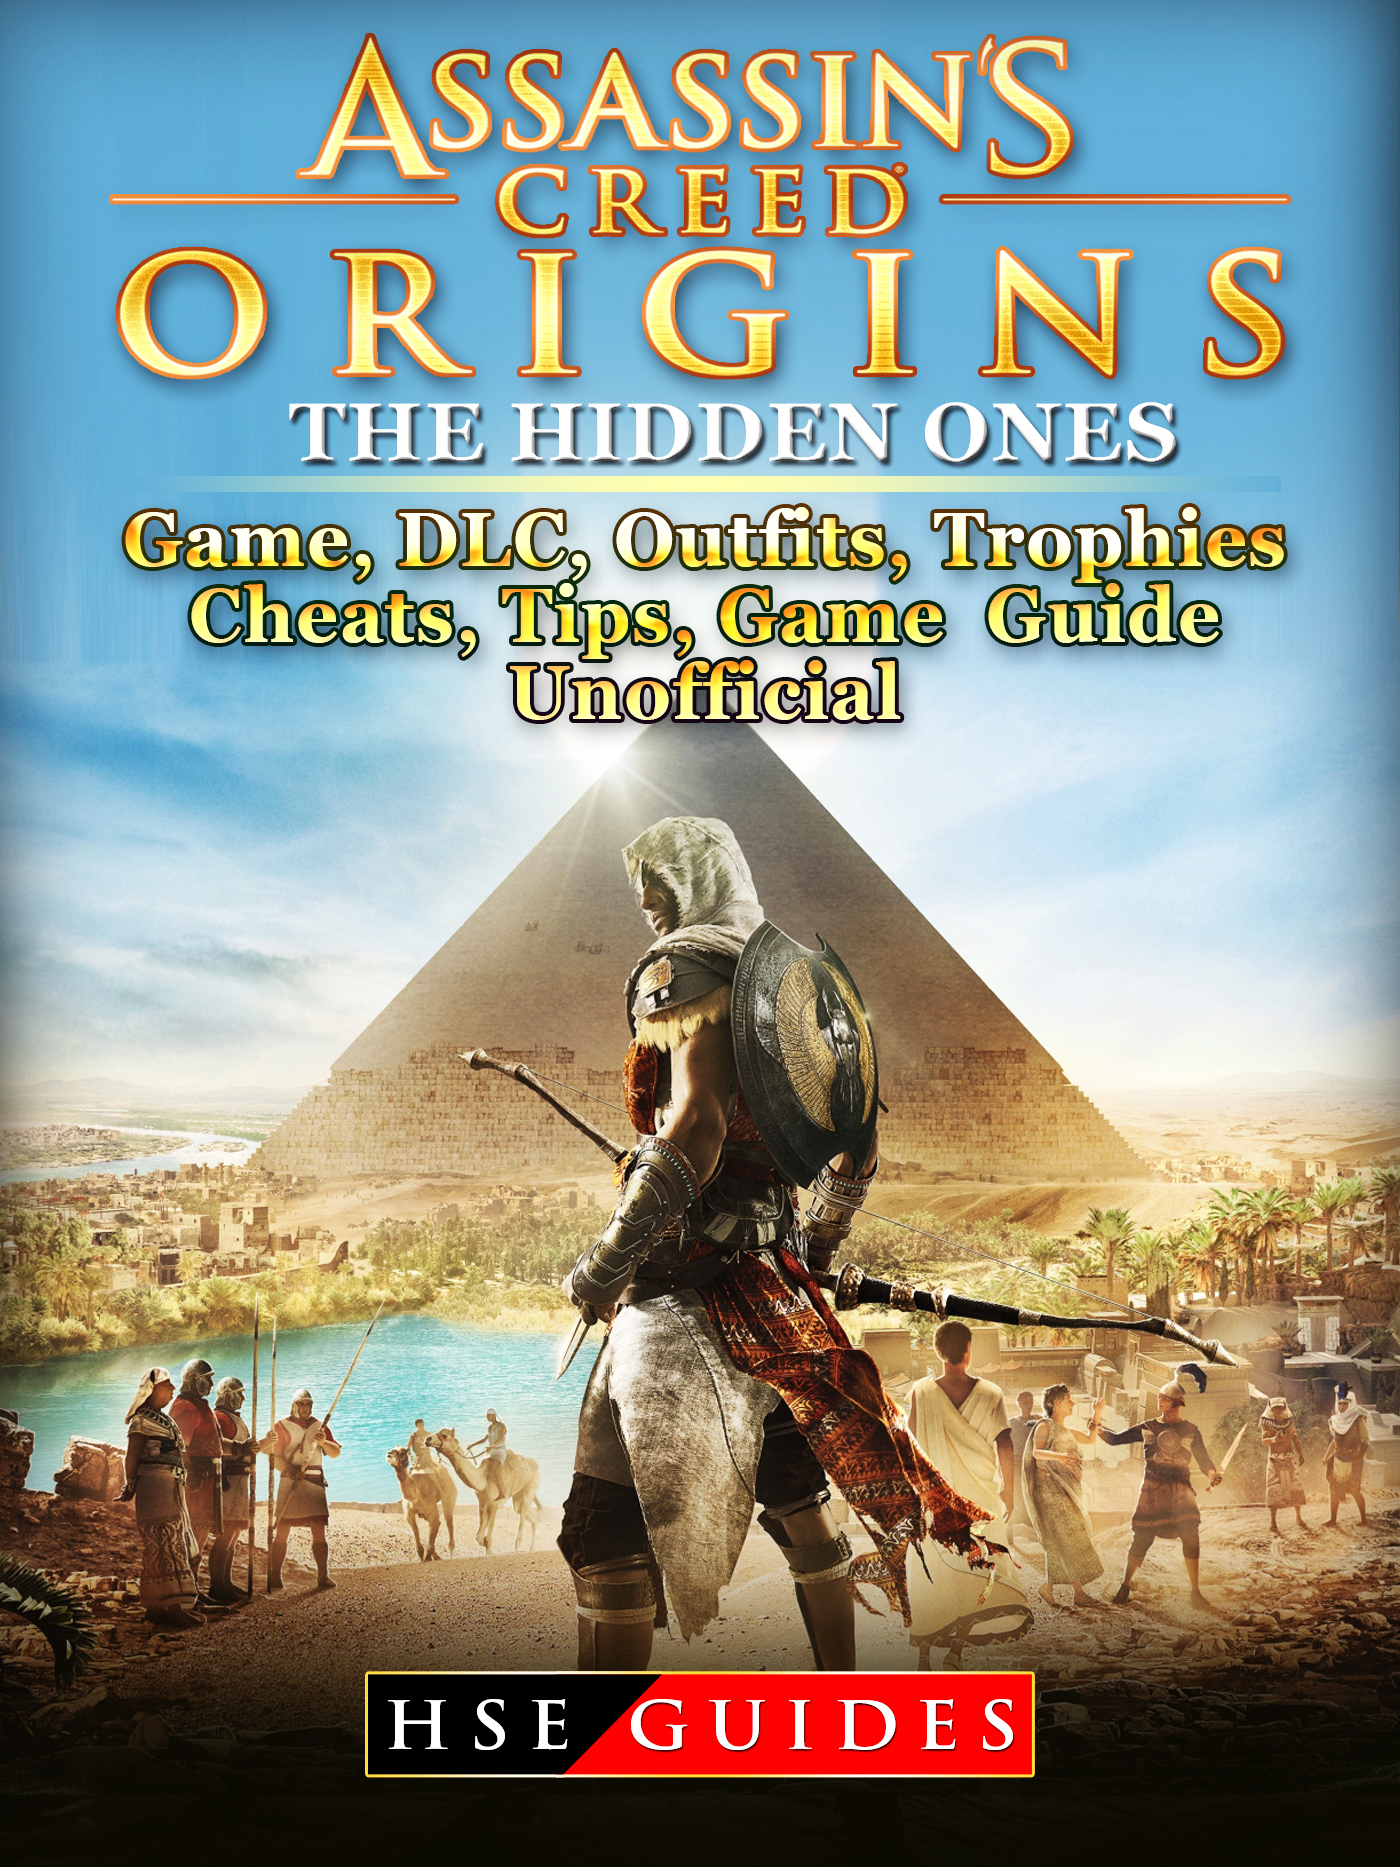 Assassins Creed Origins The Curse of the Pharaohs Game, DLC, Tips, Cheats, Strategies, Game Guide Unofficial By Hse Guides